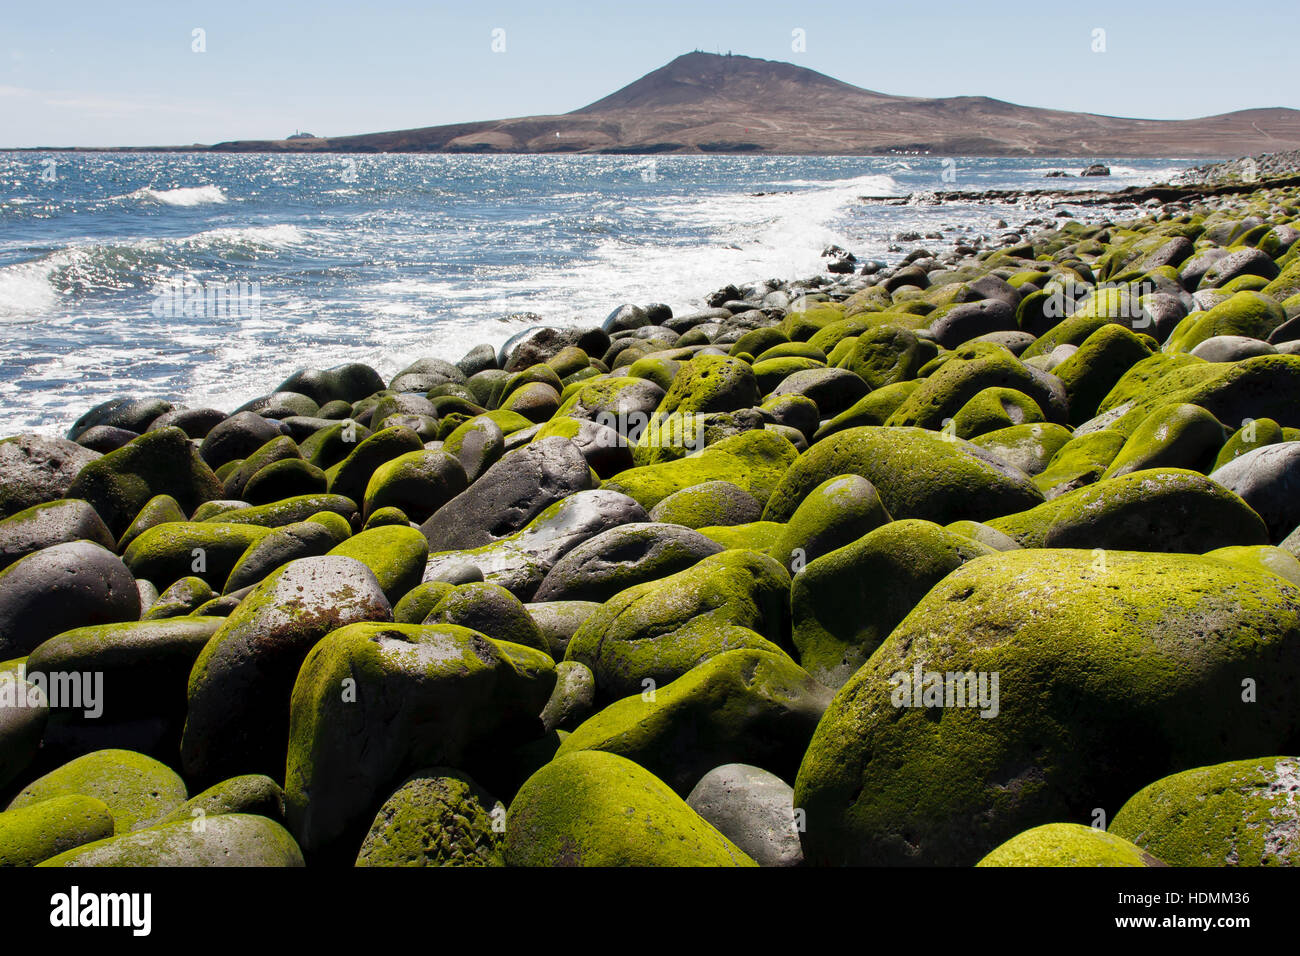 Stony beach. Atlantic coast - Gran Canaria - Stock Image